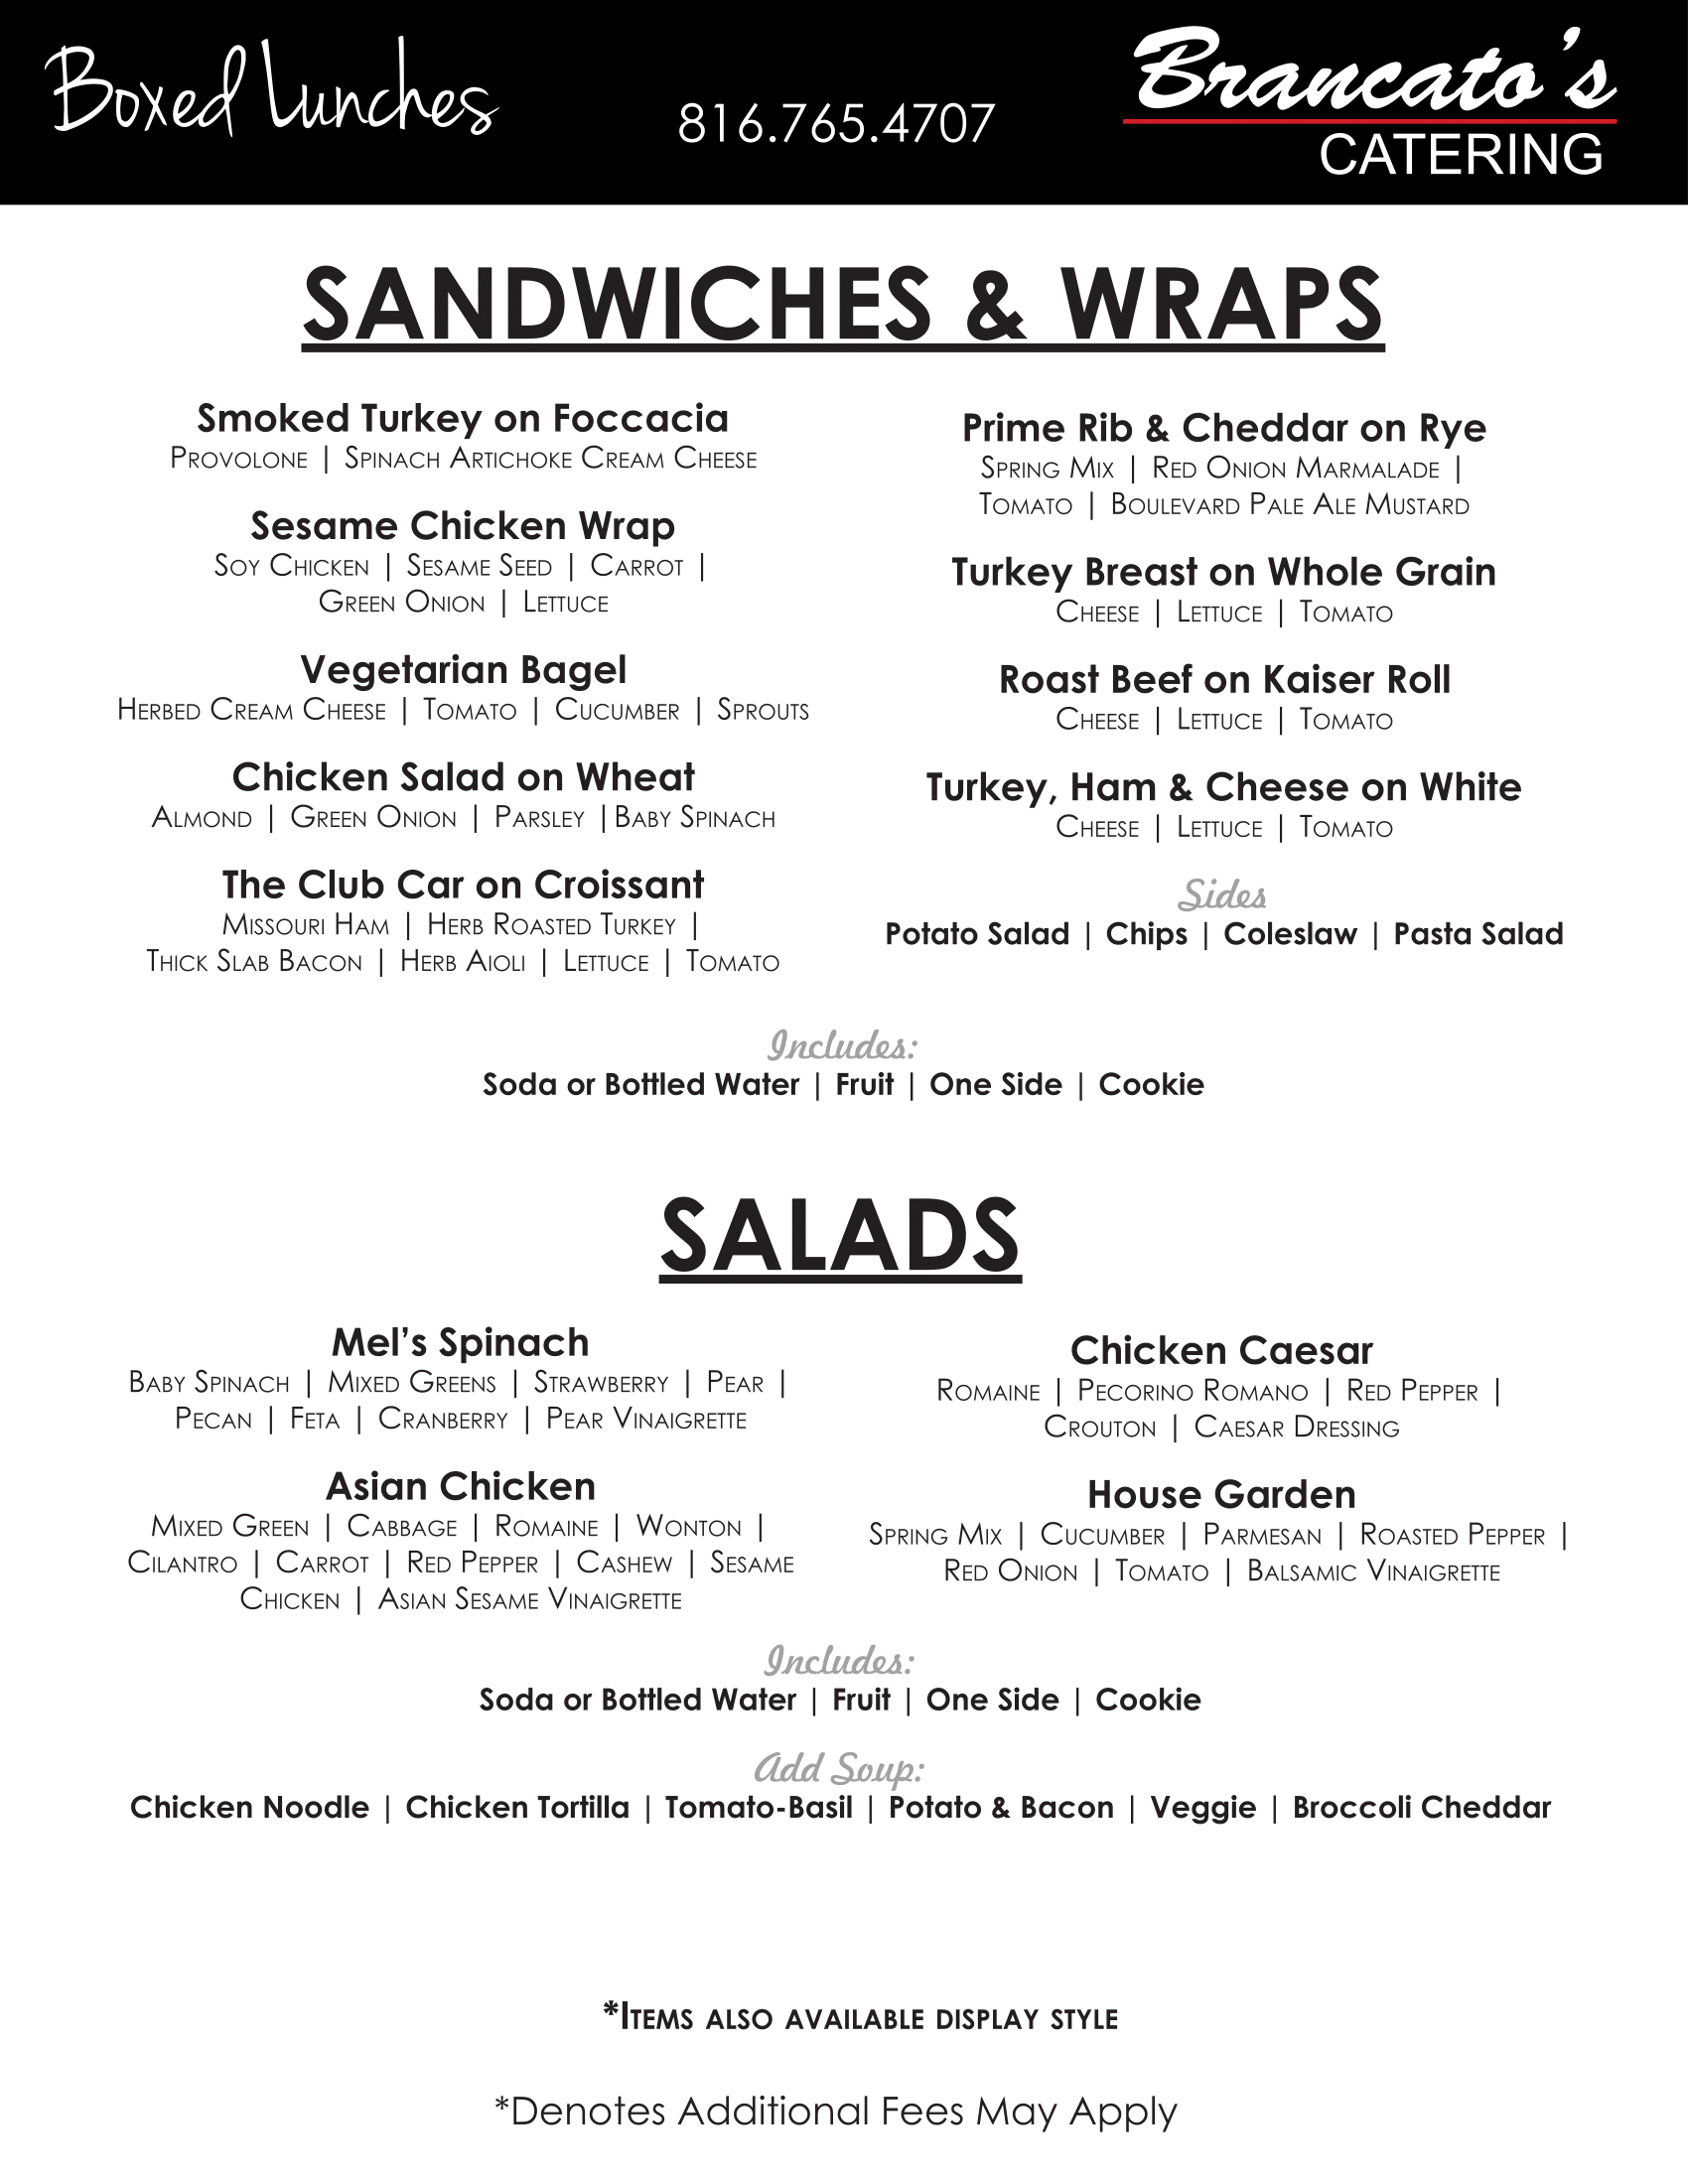 Sandwiches and Wraps-1